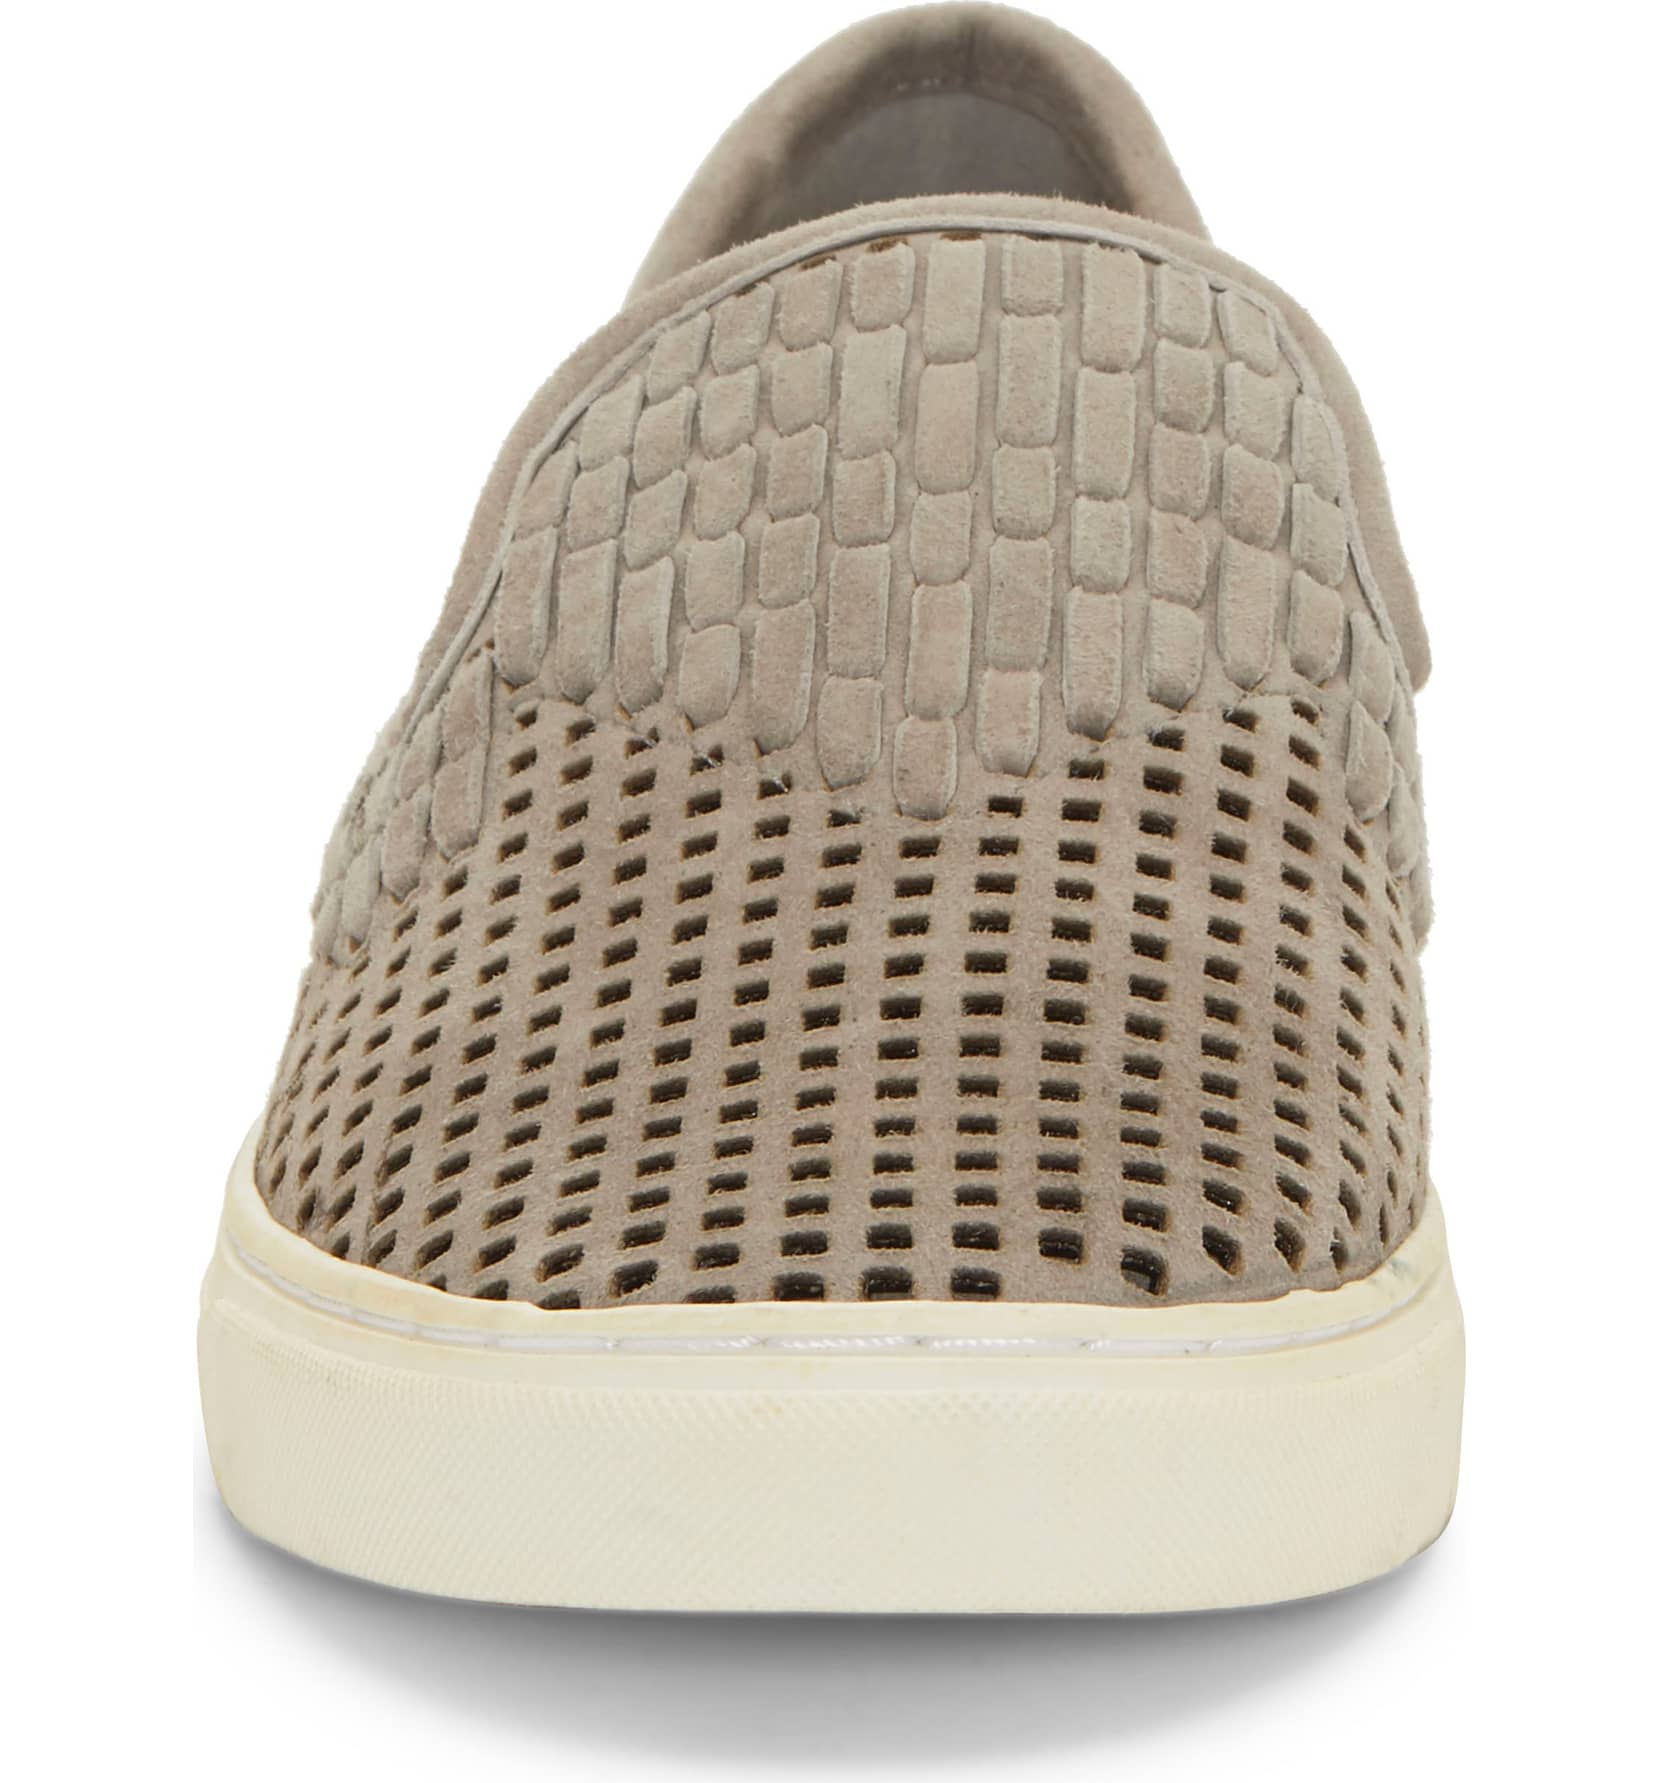 Vince-Camuto-Bristie-Storm-Grey-Leather-Woven-White-Sole-Slip-On-Sneakers thumbnail 9